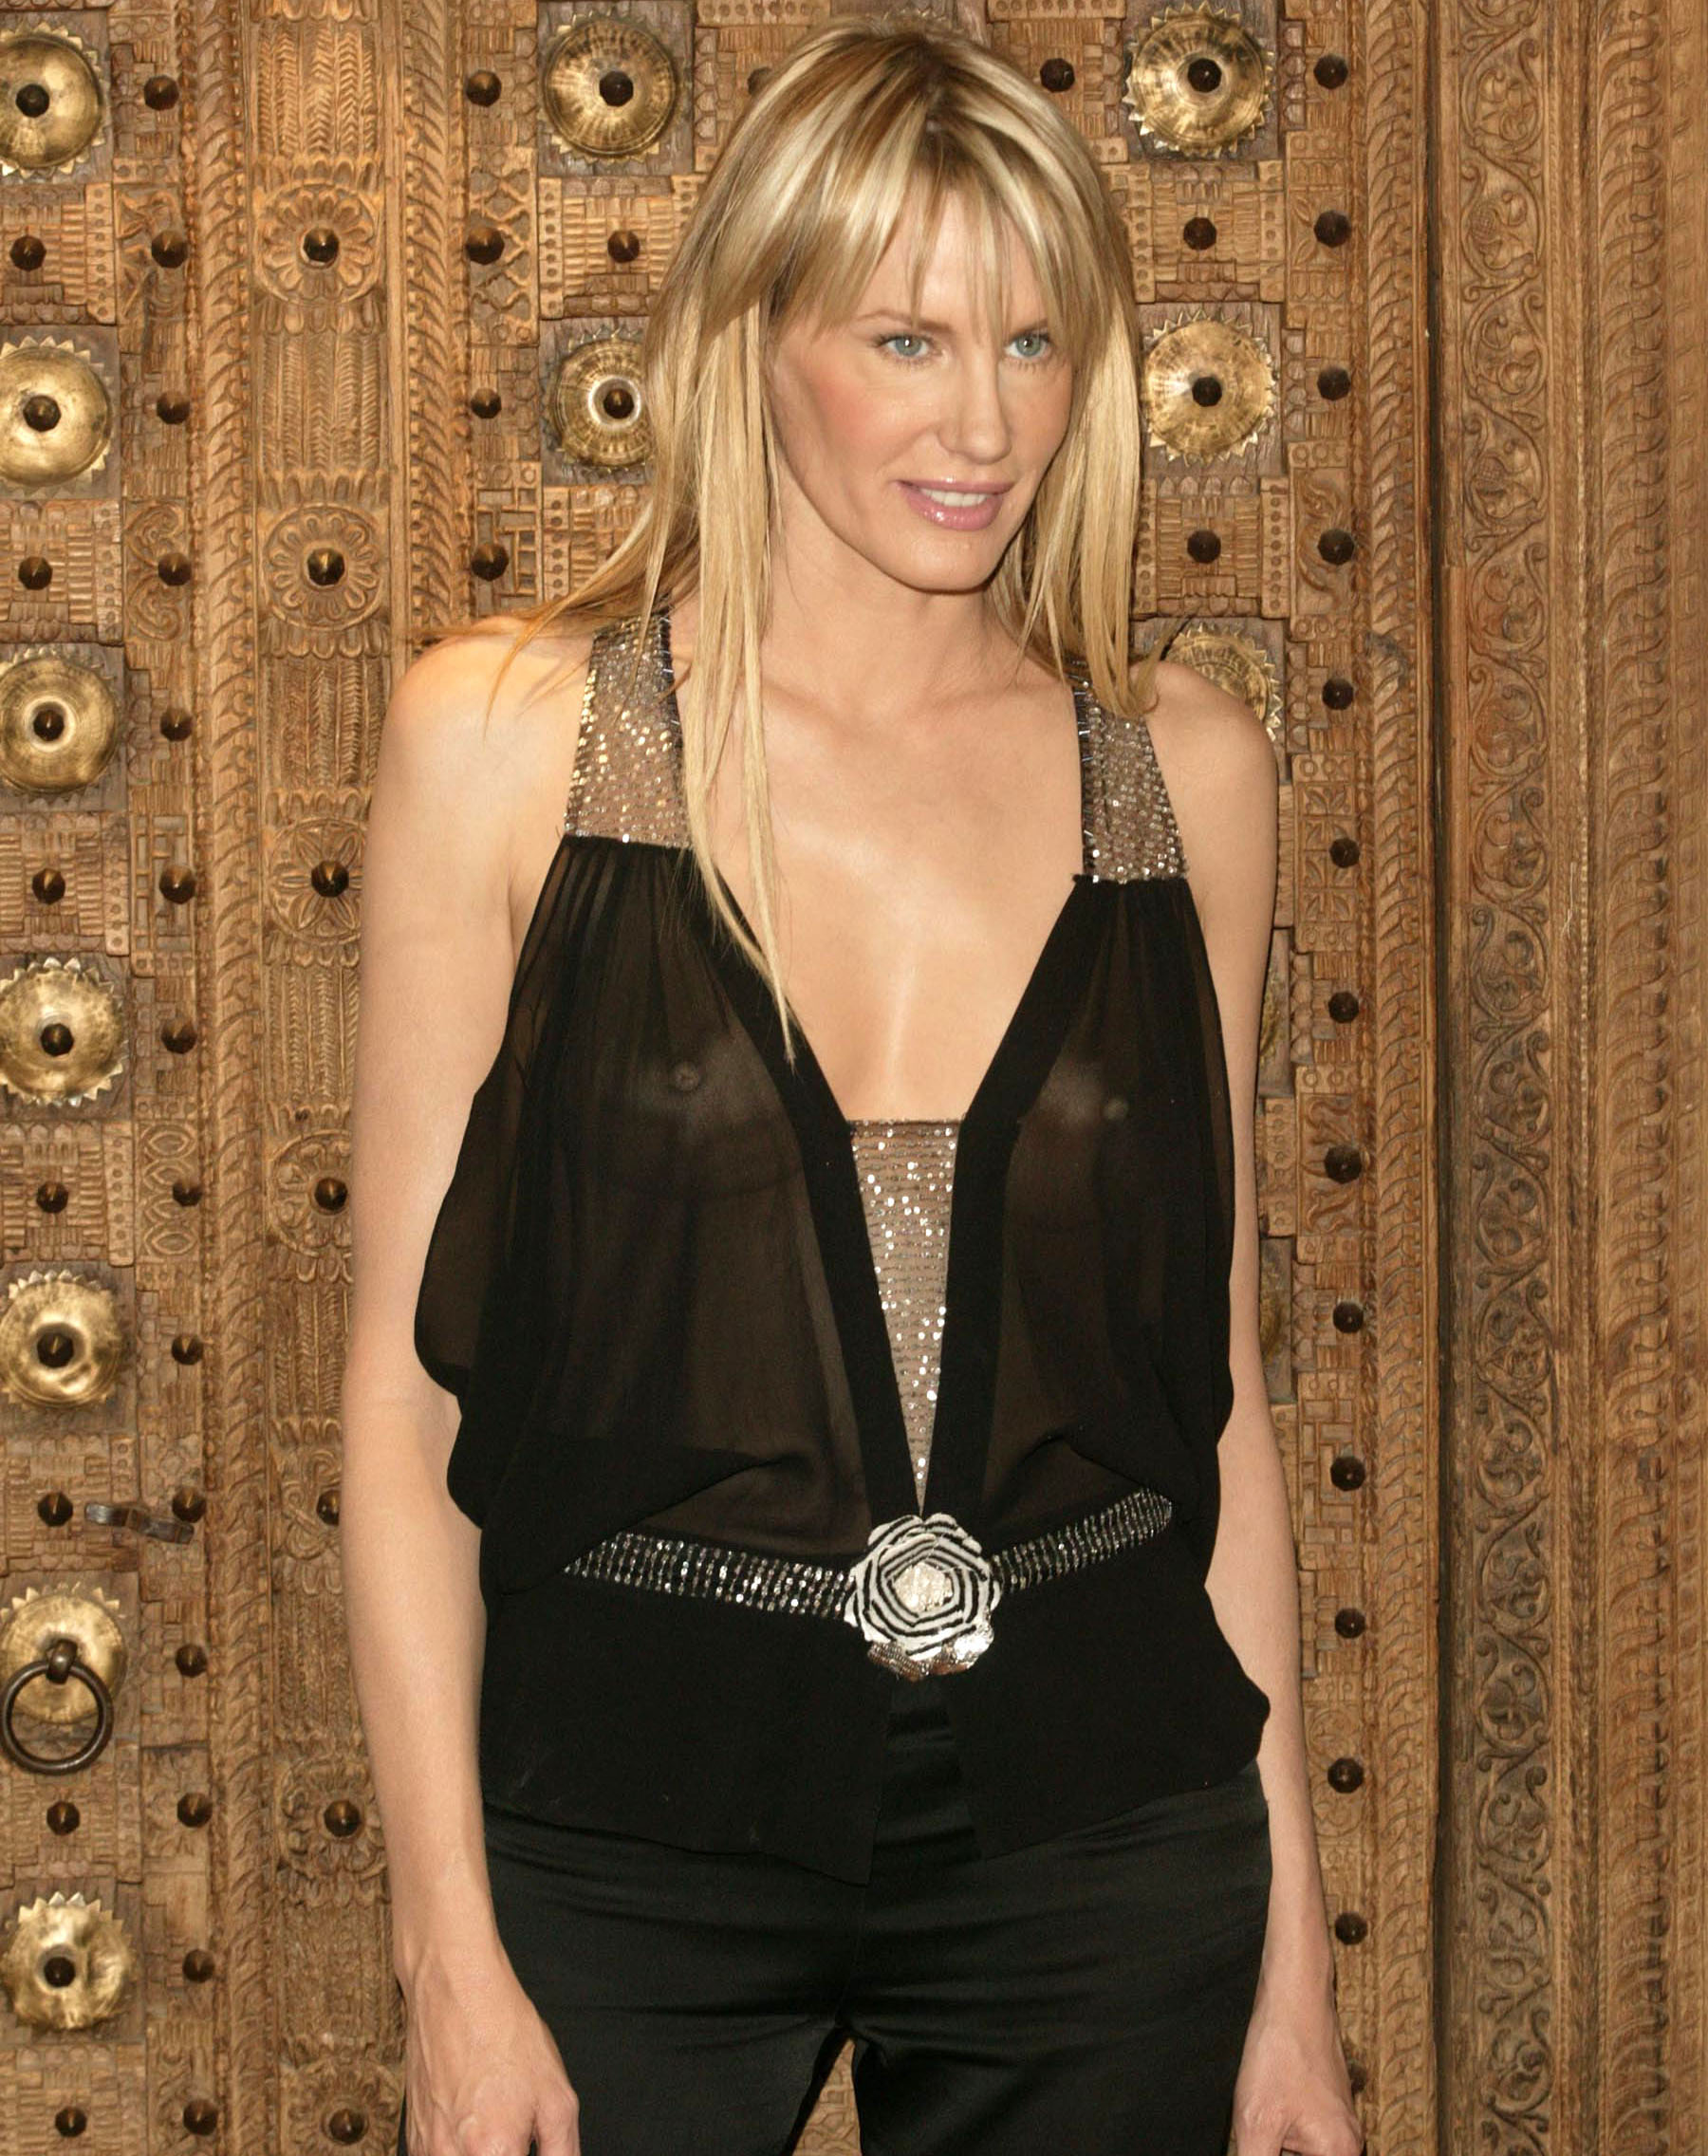 Celebrity Daryl Hannah nudes (67 foto and video), Sexy, Leaked, Twitter, cleavage 2006